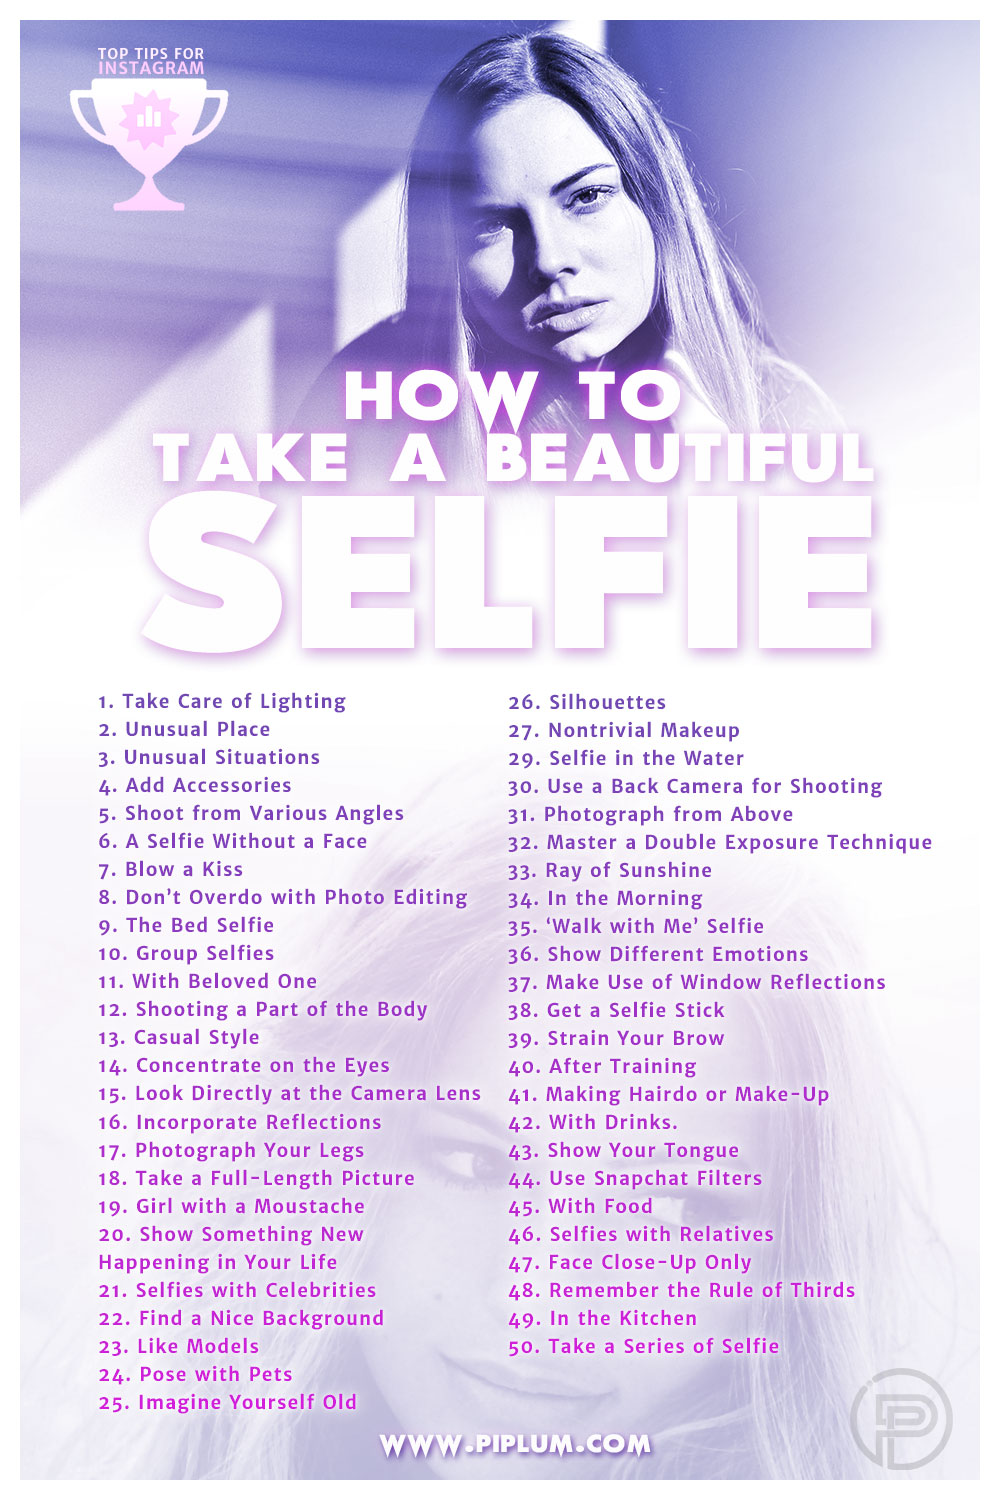 Top-rated-selfie-ideas-for-Instagram-and-other-social-networks-printable-poster-list